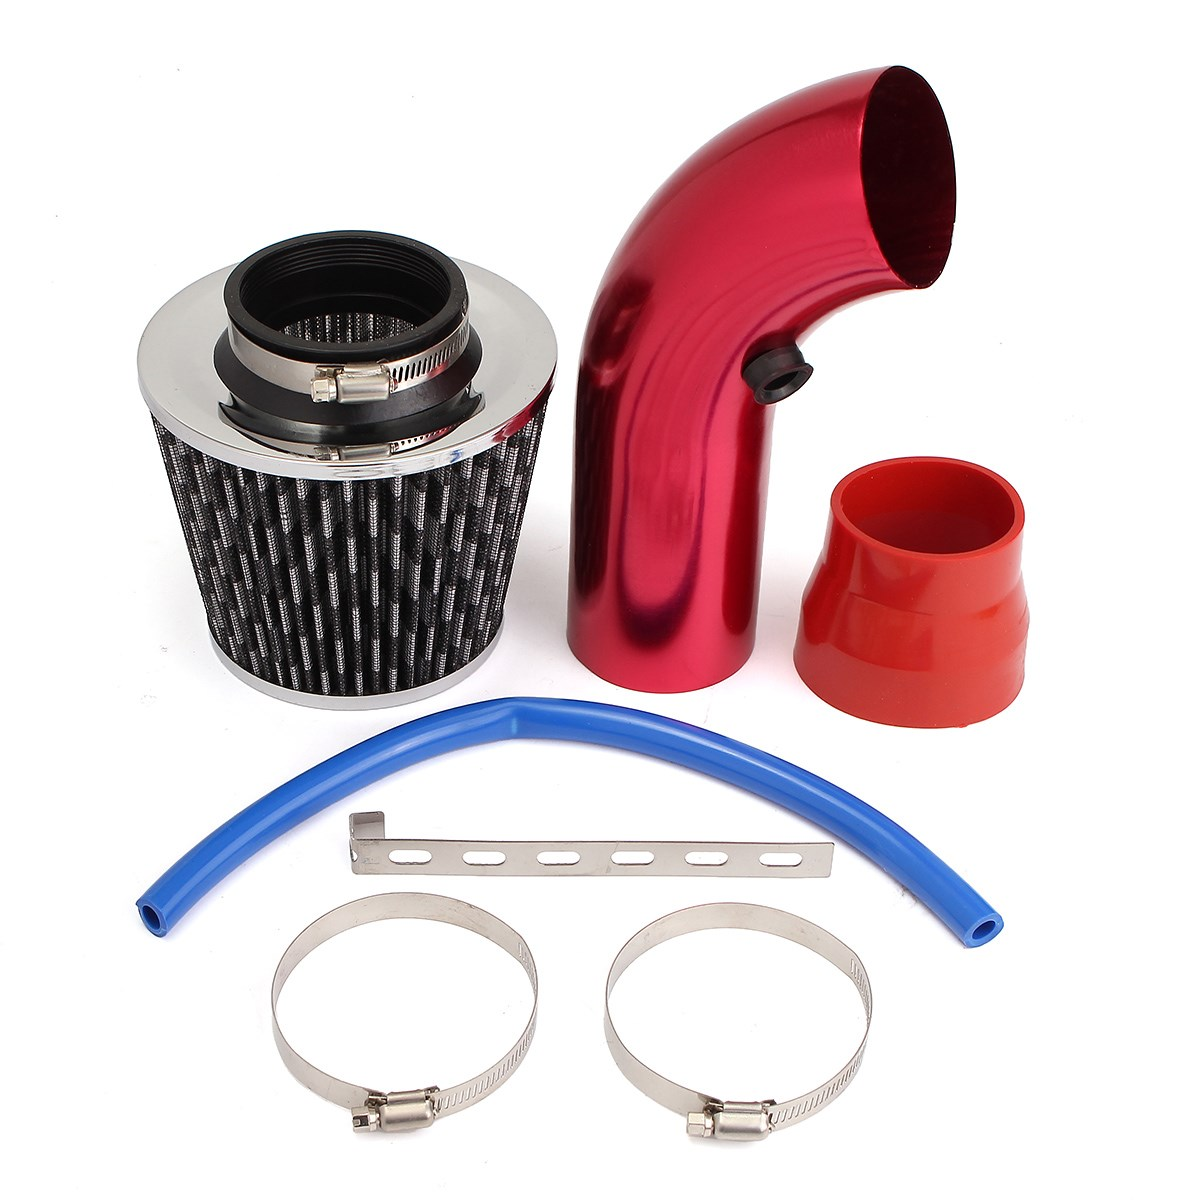 3 INCH 75mm Universal Short Racing High Flow Air Intake Kit Pipe + Filter + Clamp3 INCH 75mm Universal Short Racing High Flow Air Intake Kit Pipe + Filter + Clamp